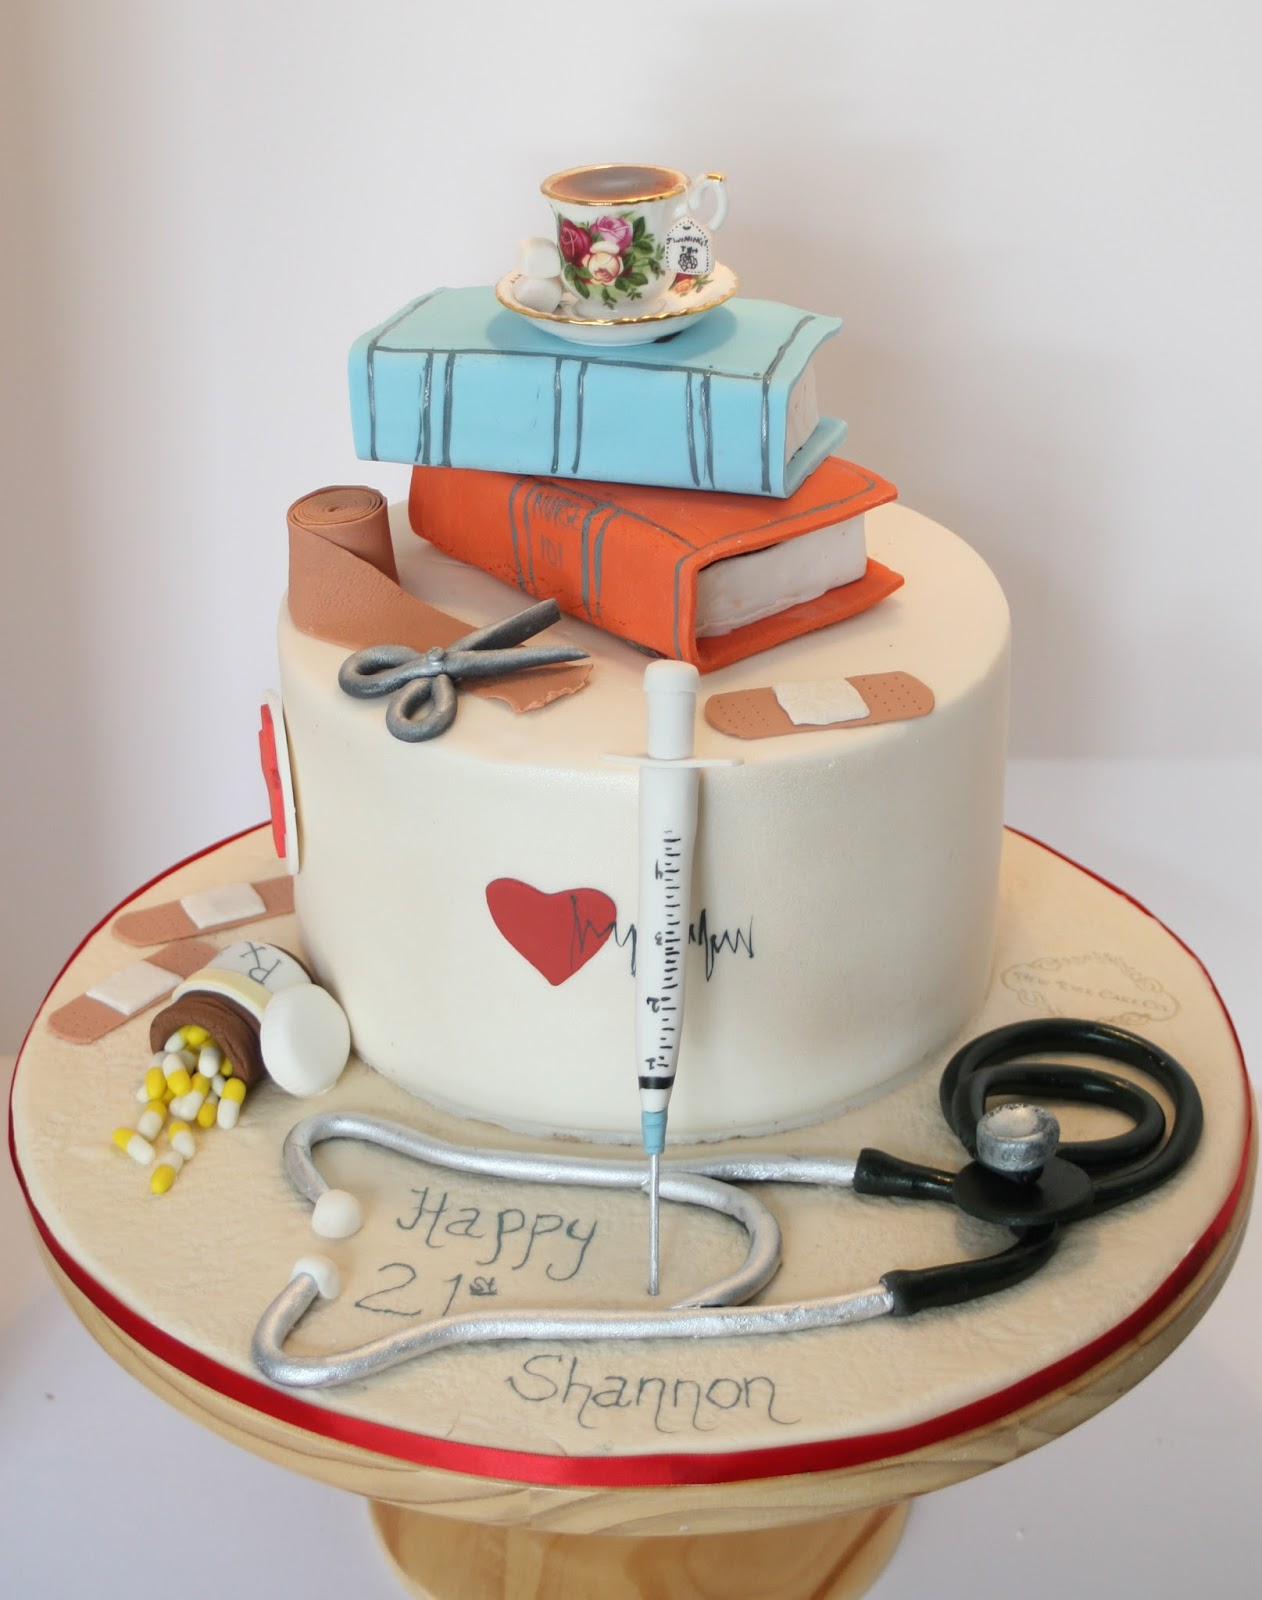 Cake Design For A Doctor Prezup for